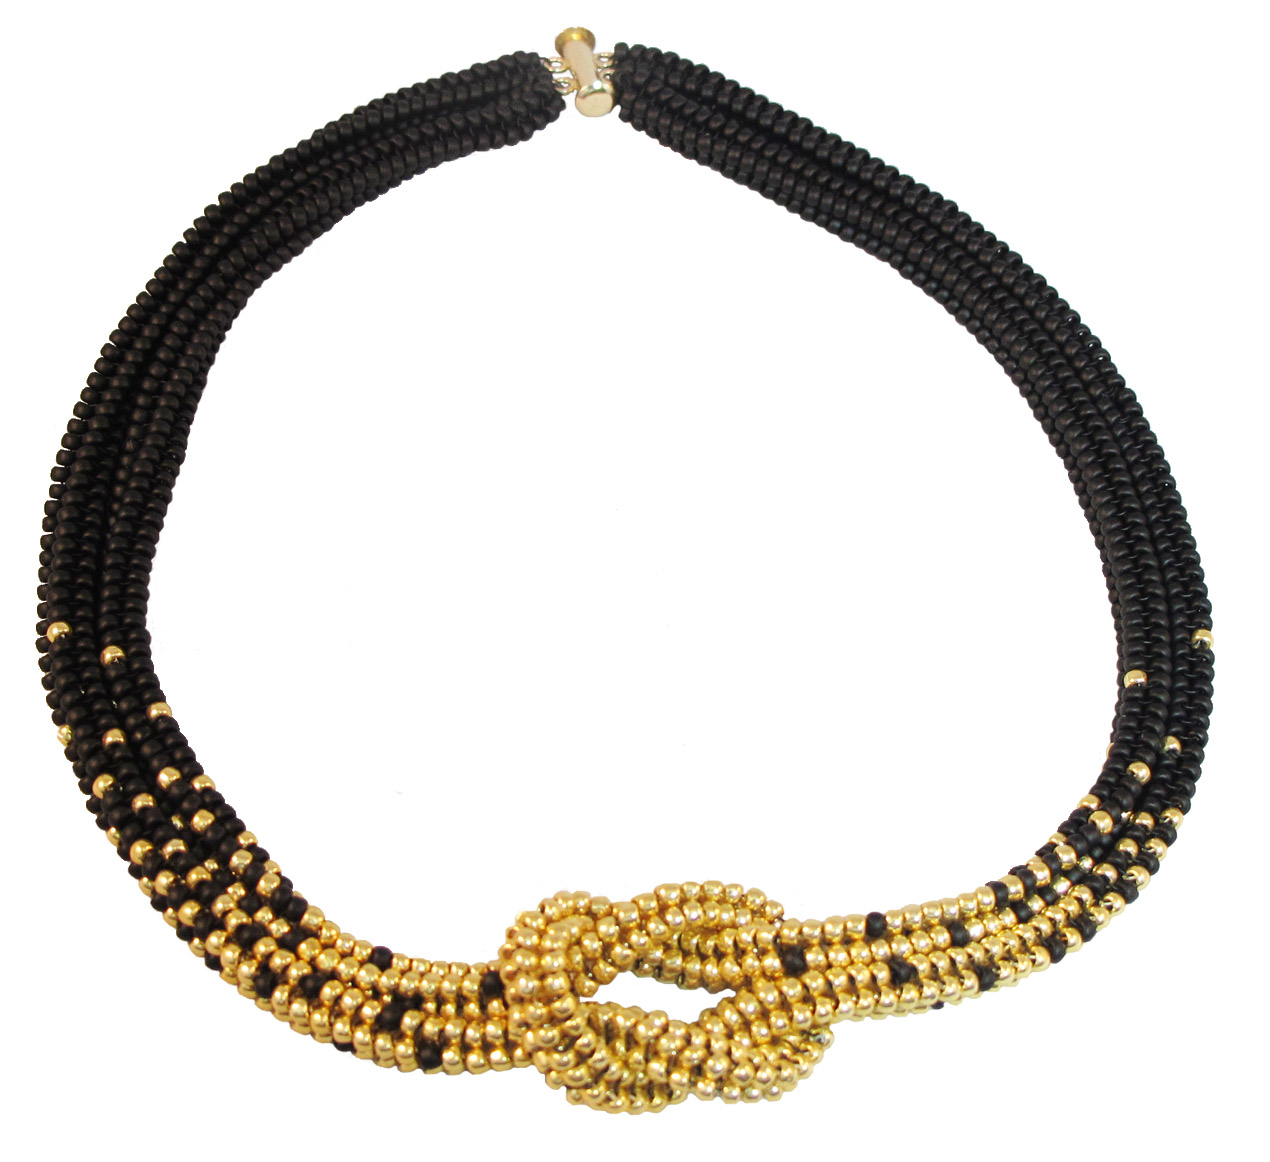 MATTE BLACK AND GOLD KNOT NECKLACE